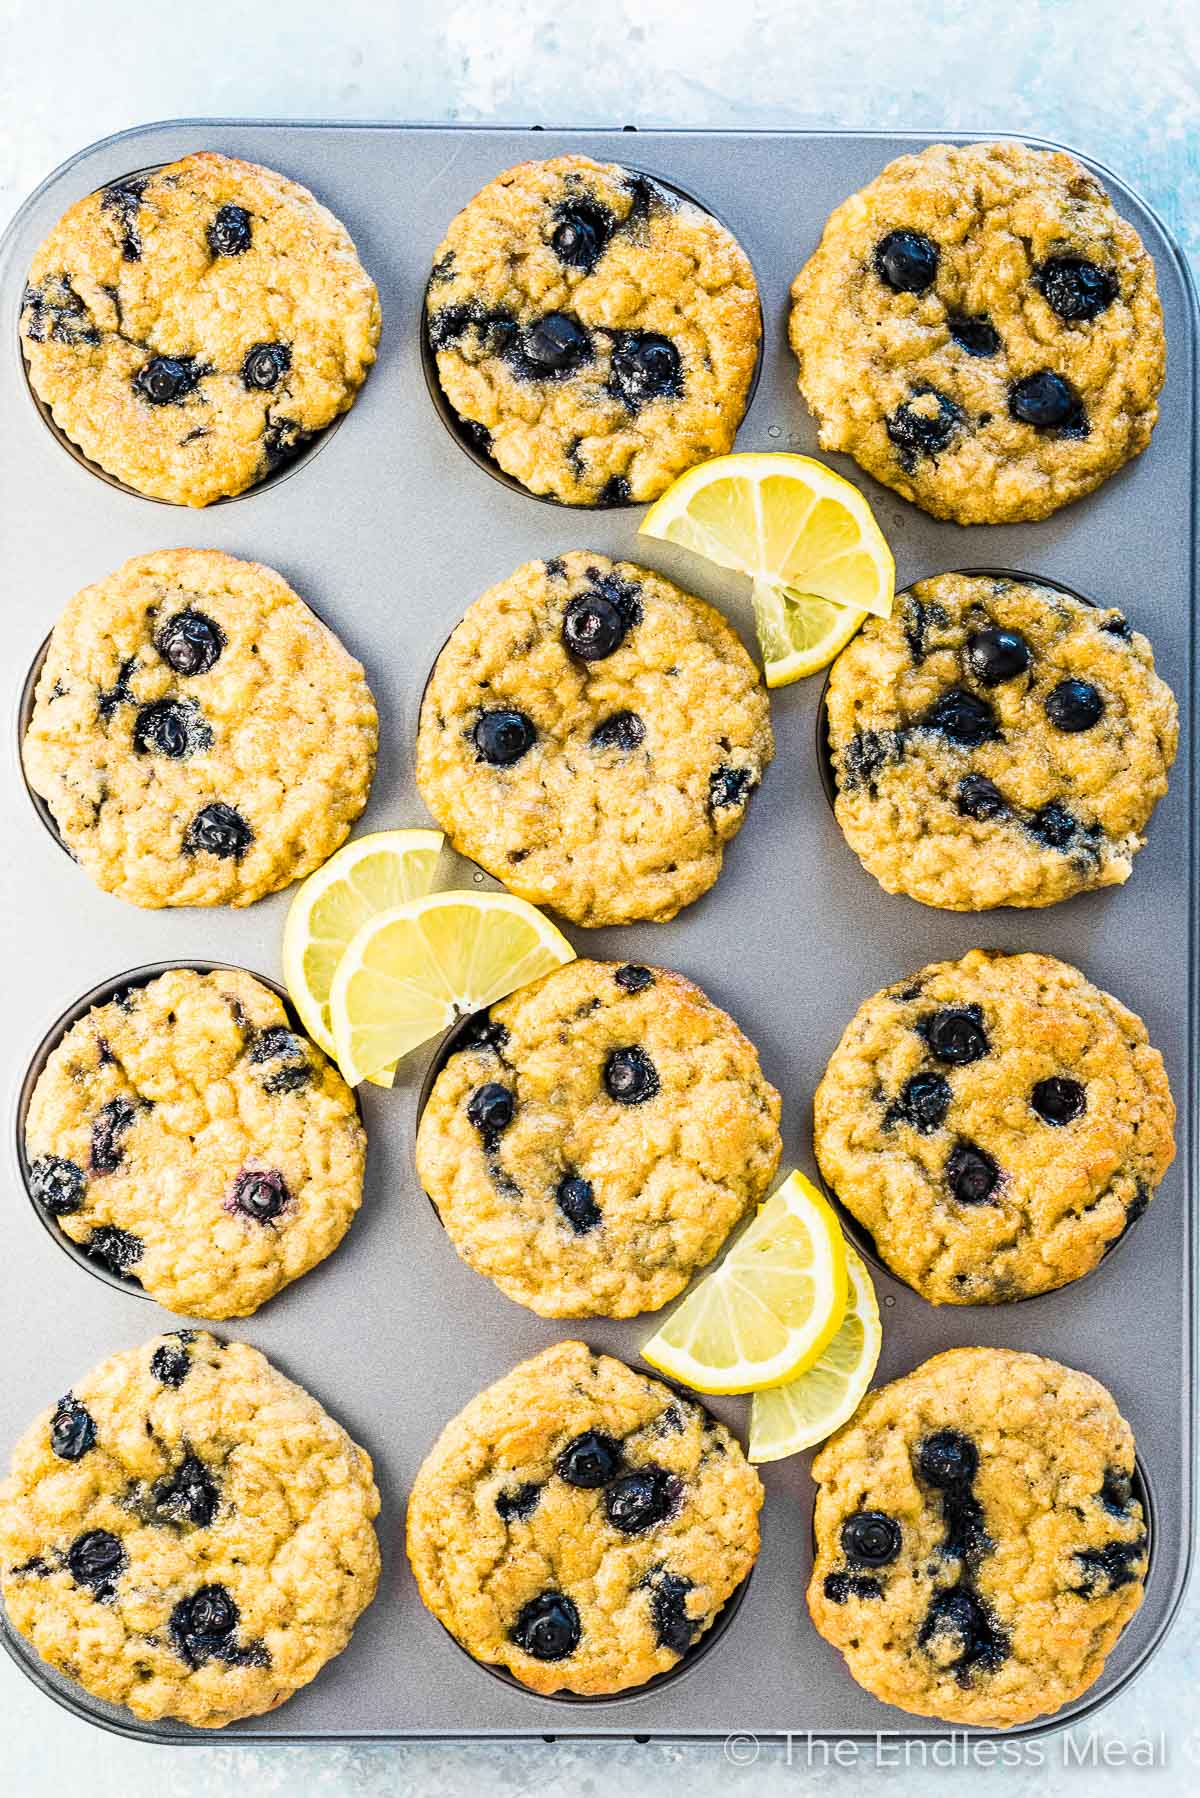 A muffin tin with lemon blueberry paleo muffins.